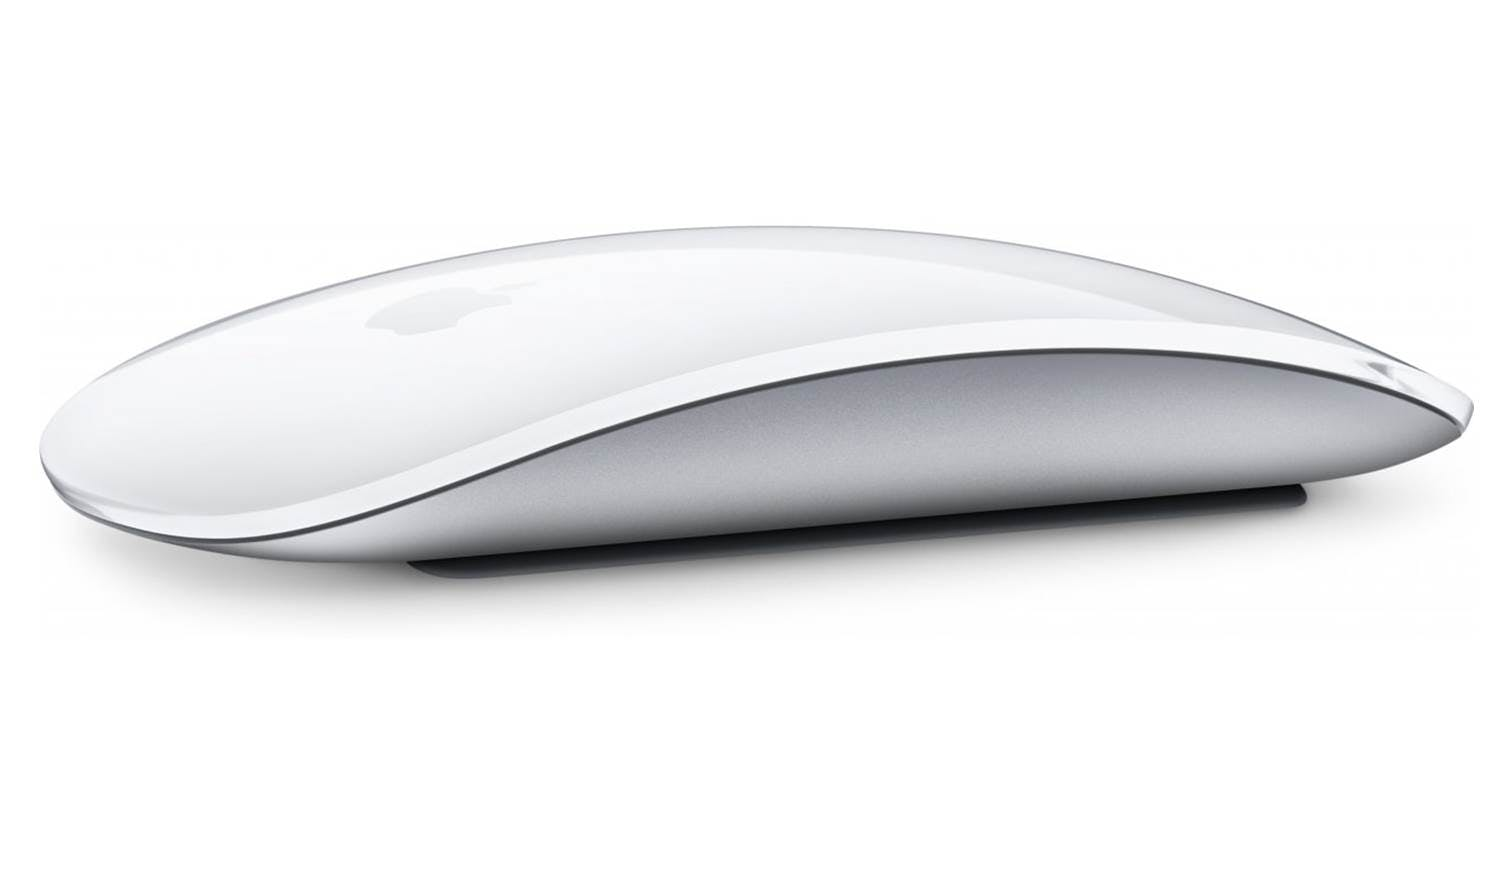 apple-magic-mouse-2-439815.6